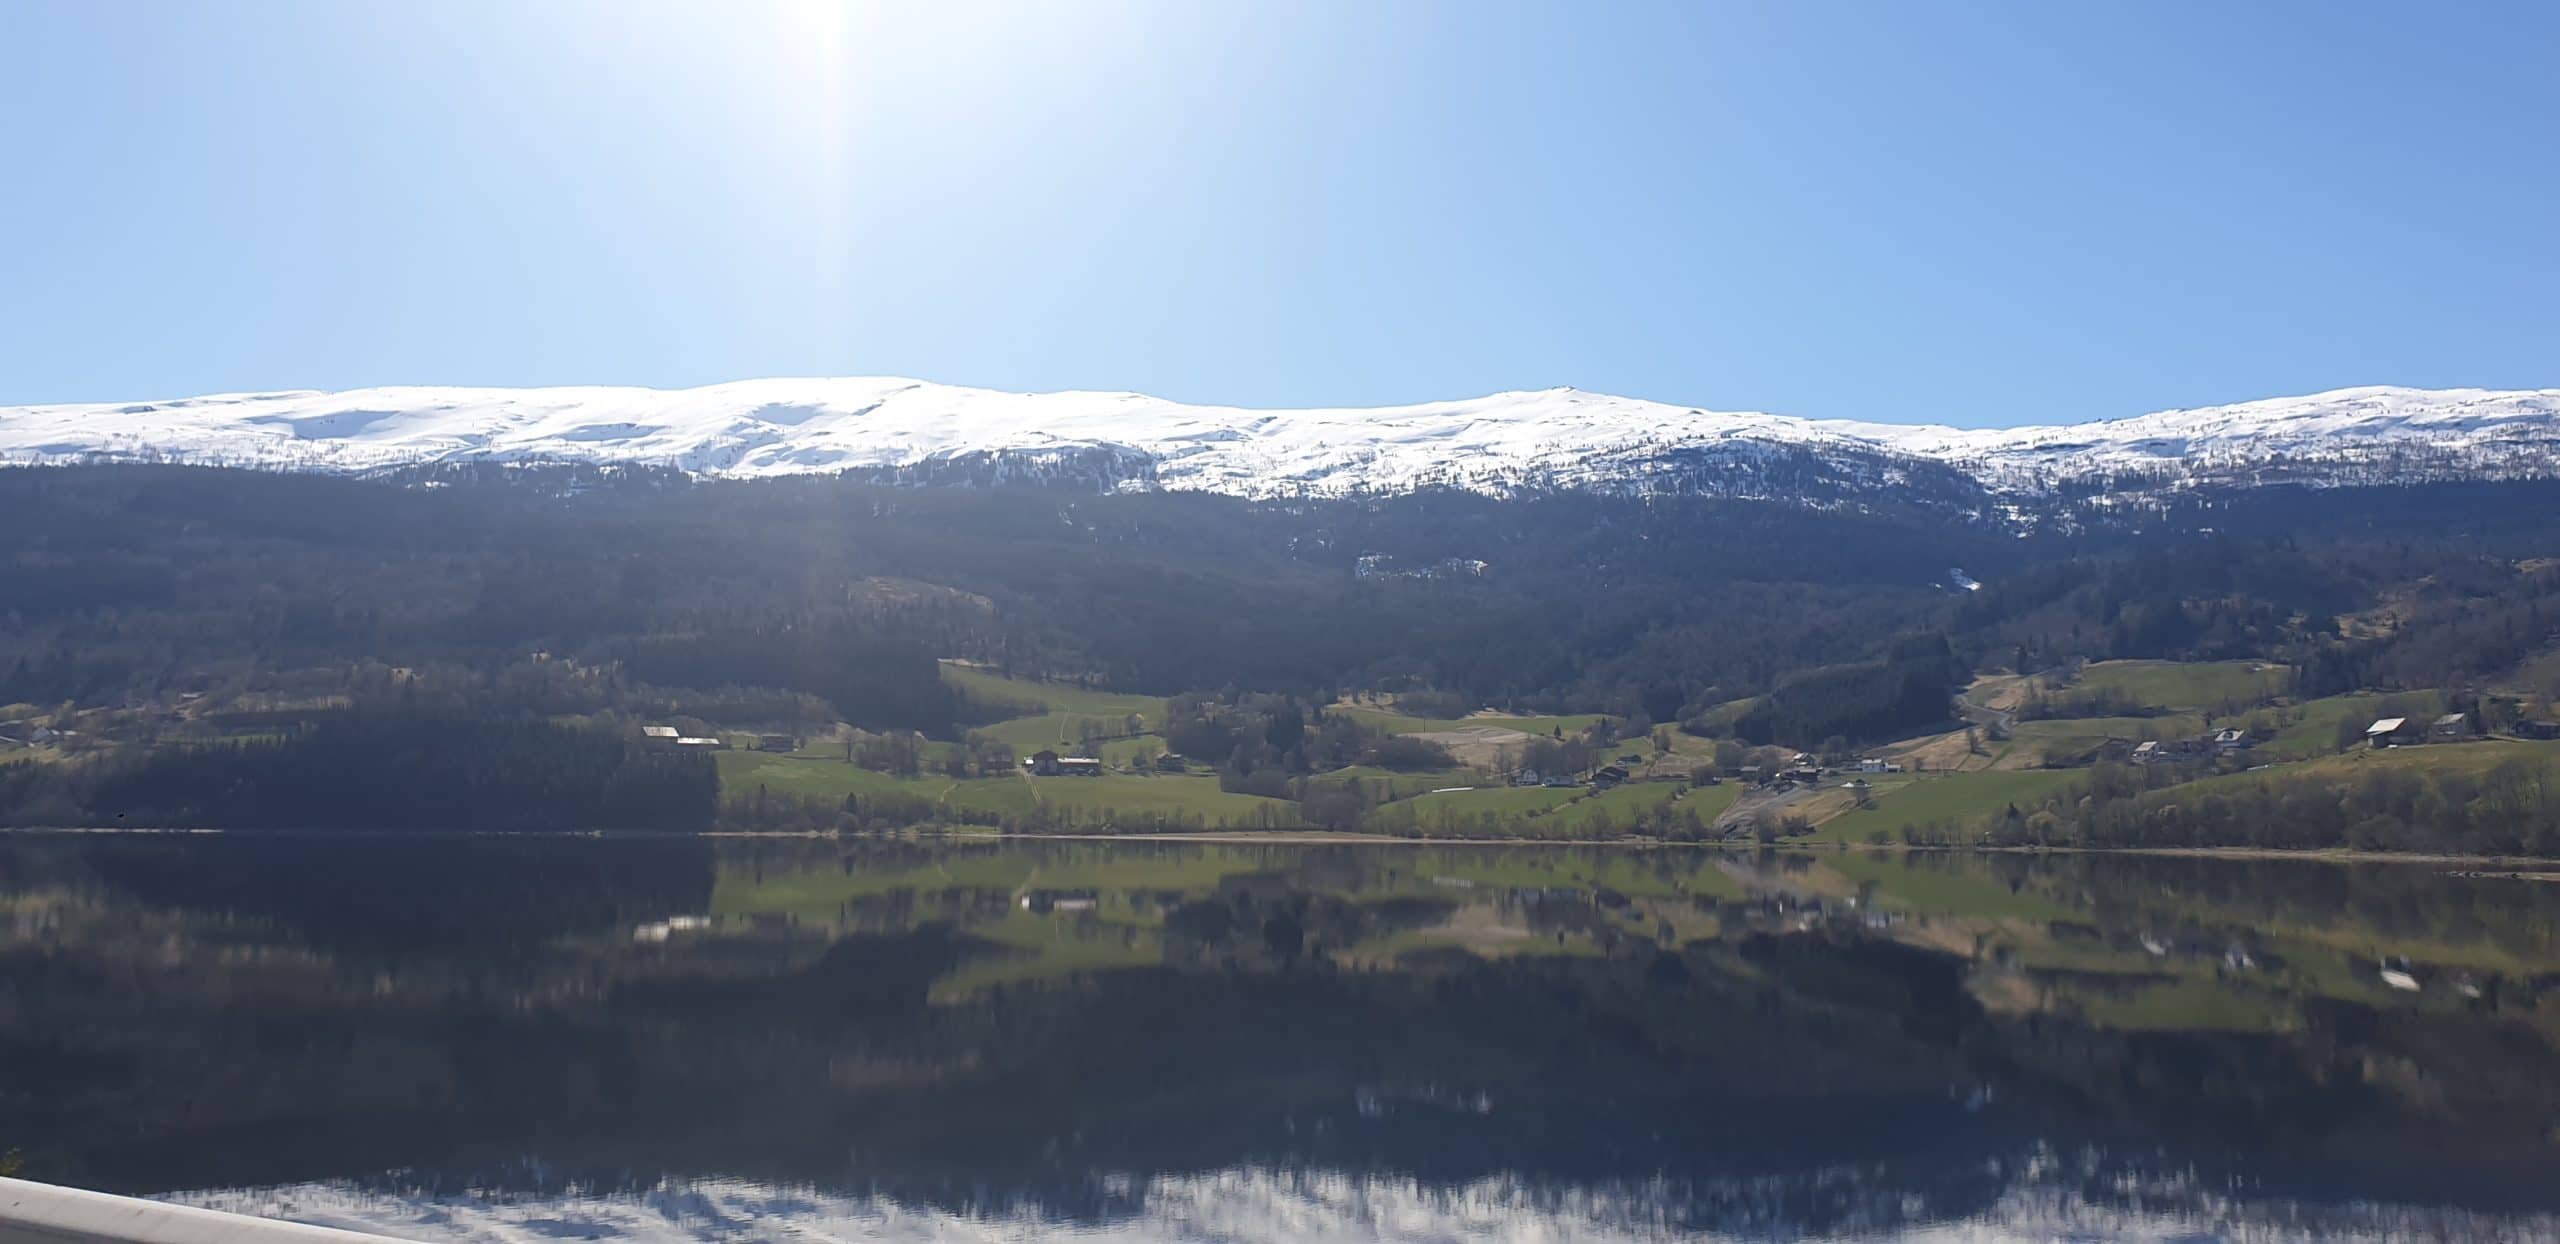 More views at Voss